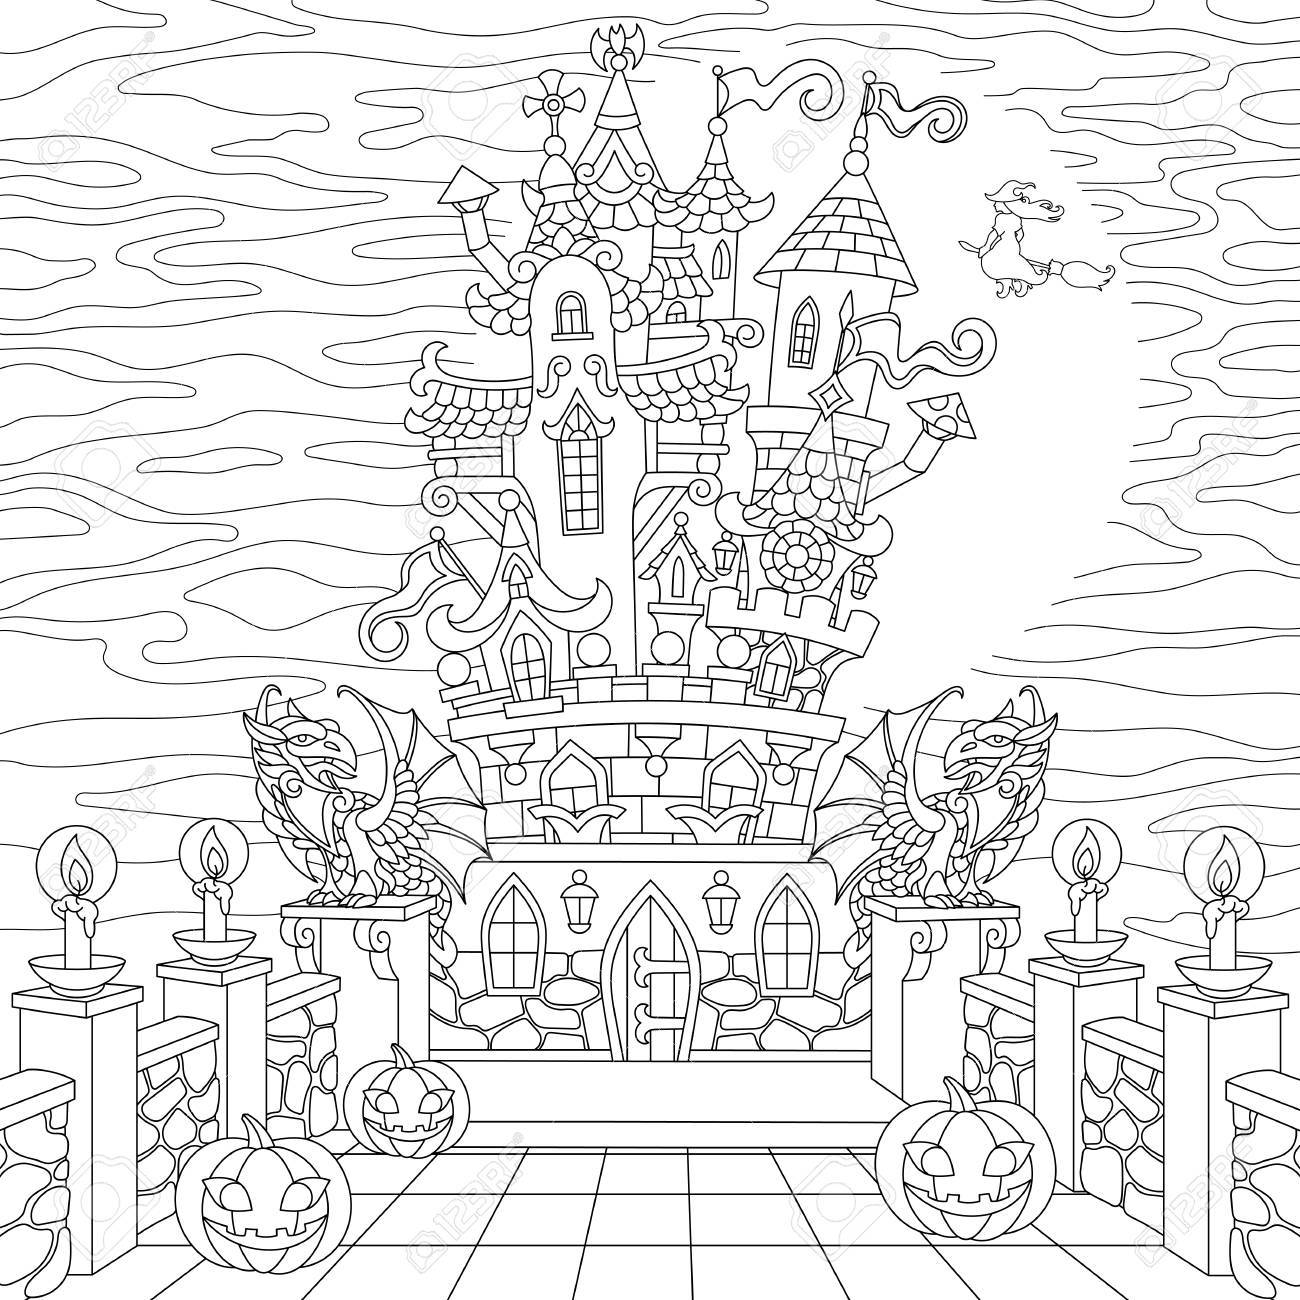 Halloween Coloring Page Spooky Castle Halloween Pumpkins Witch